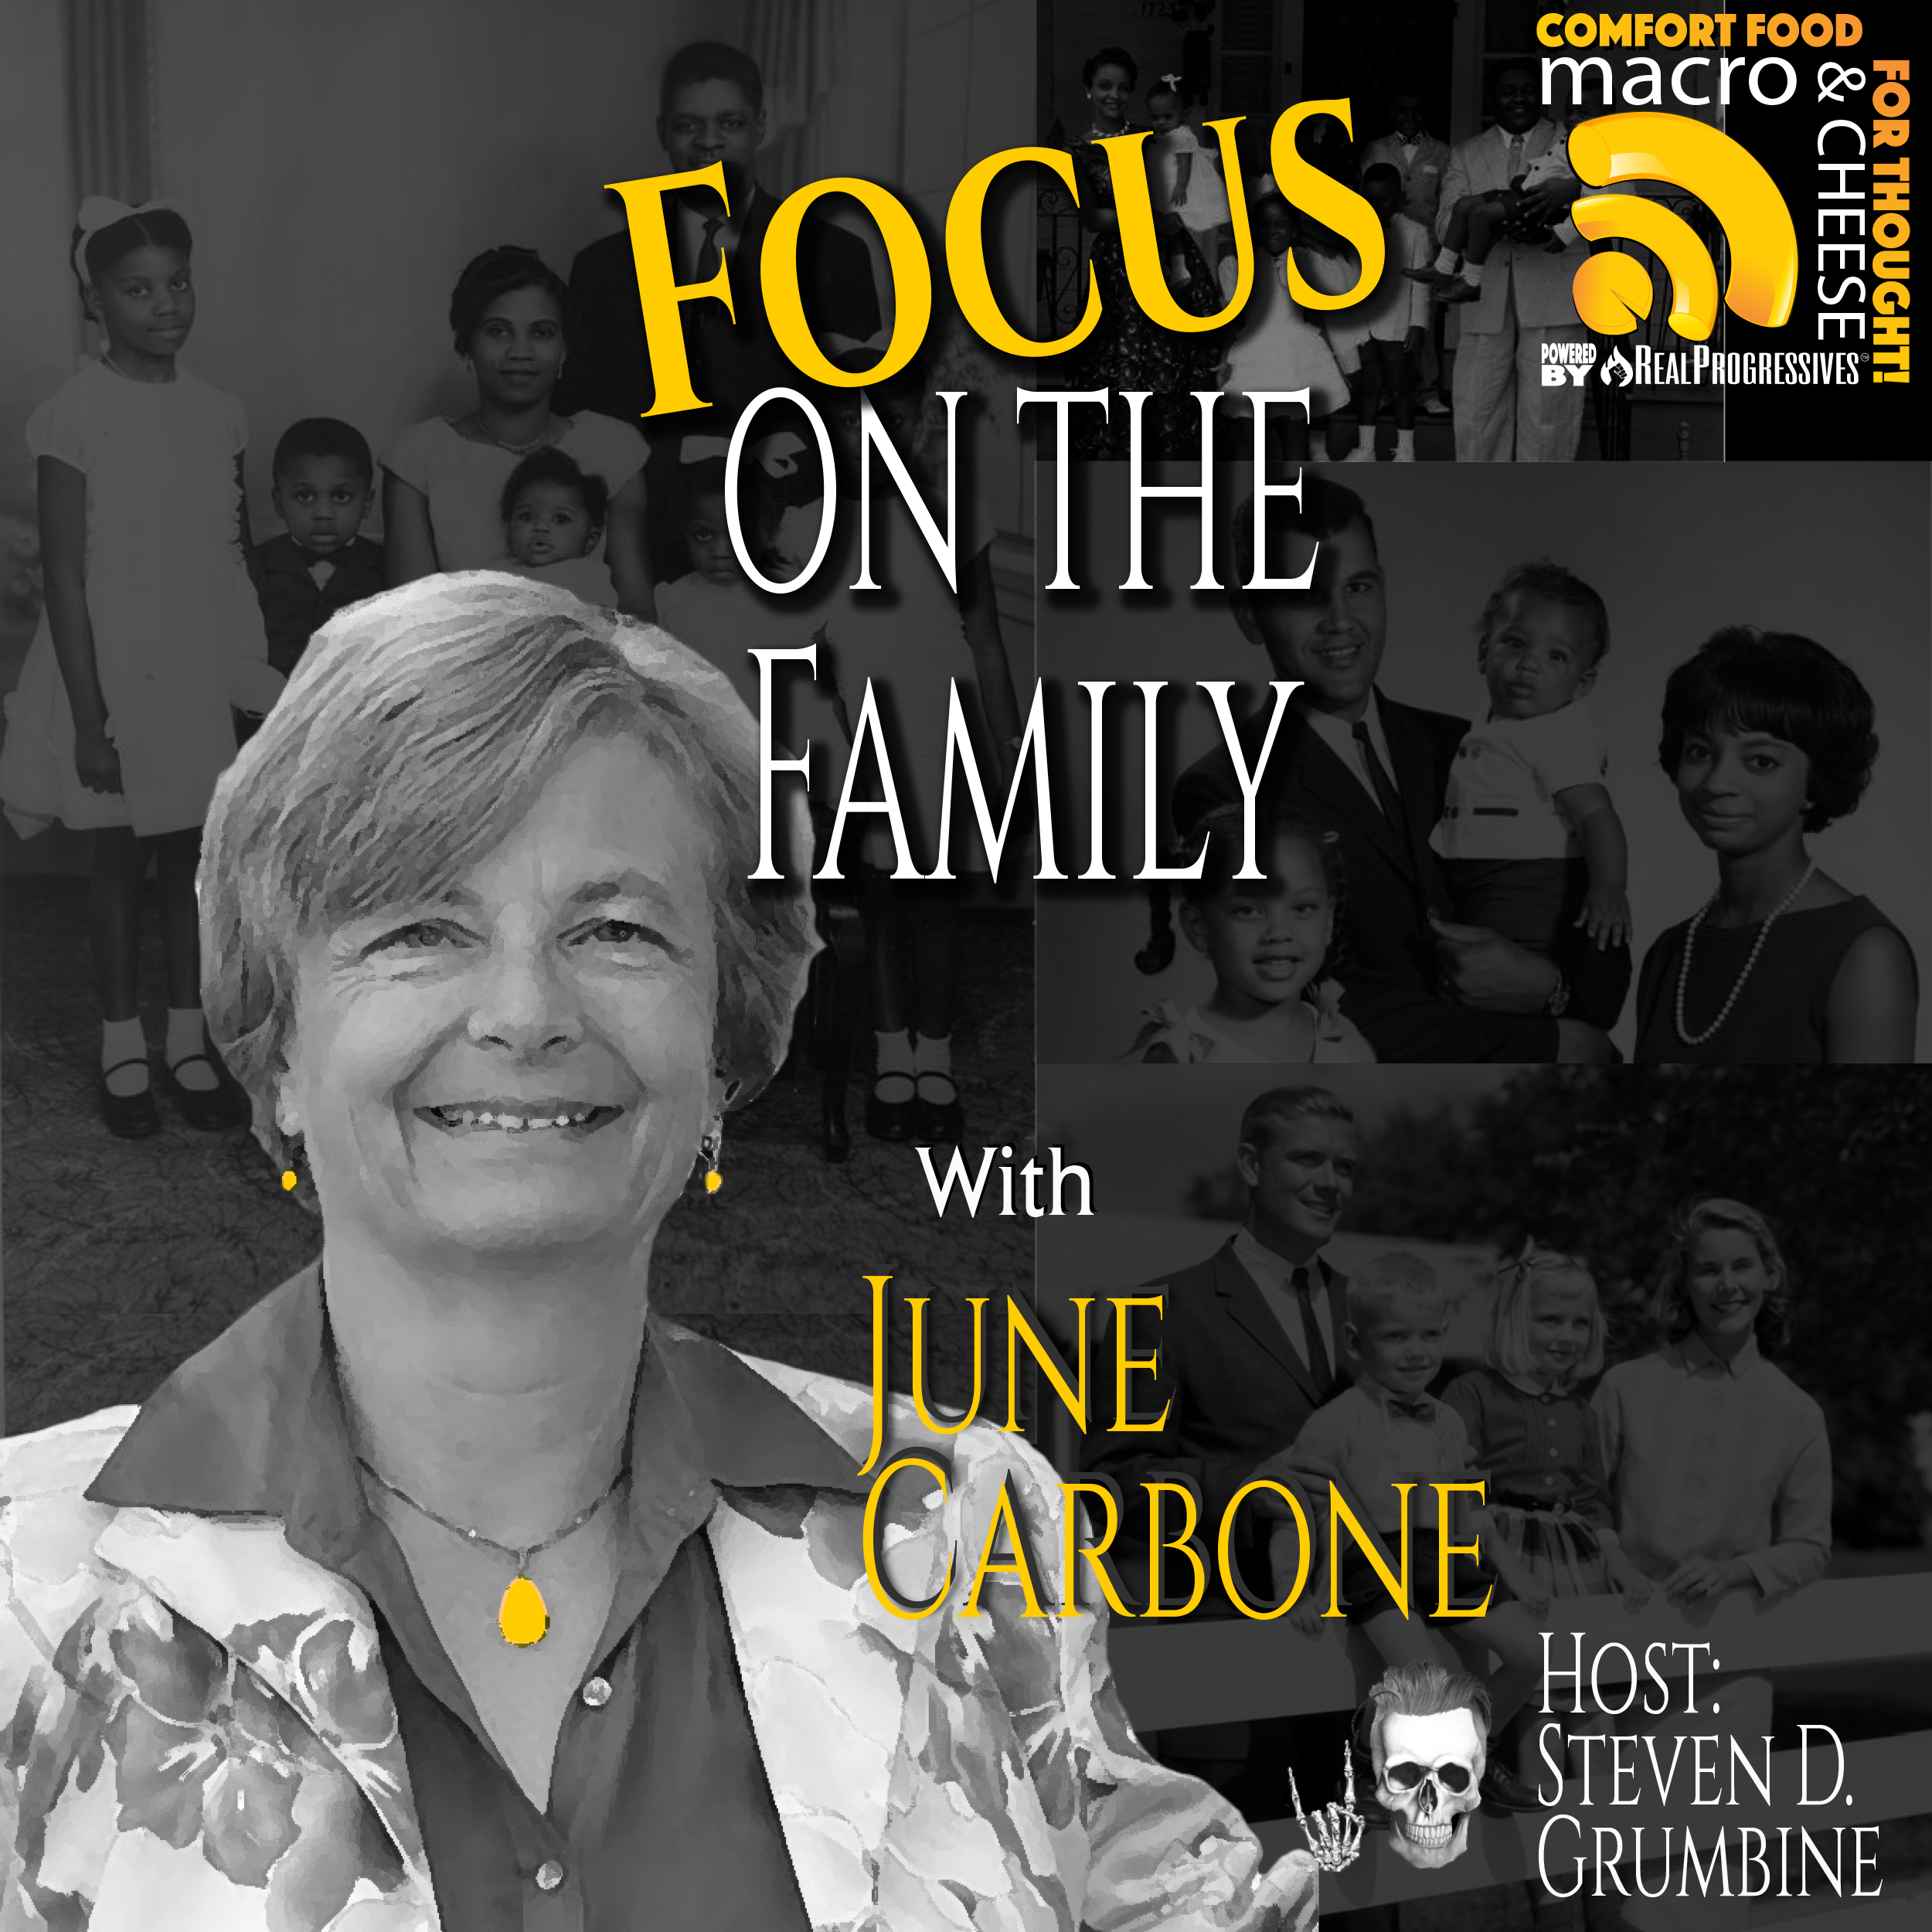 Focus on the Family with June Carbone